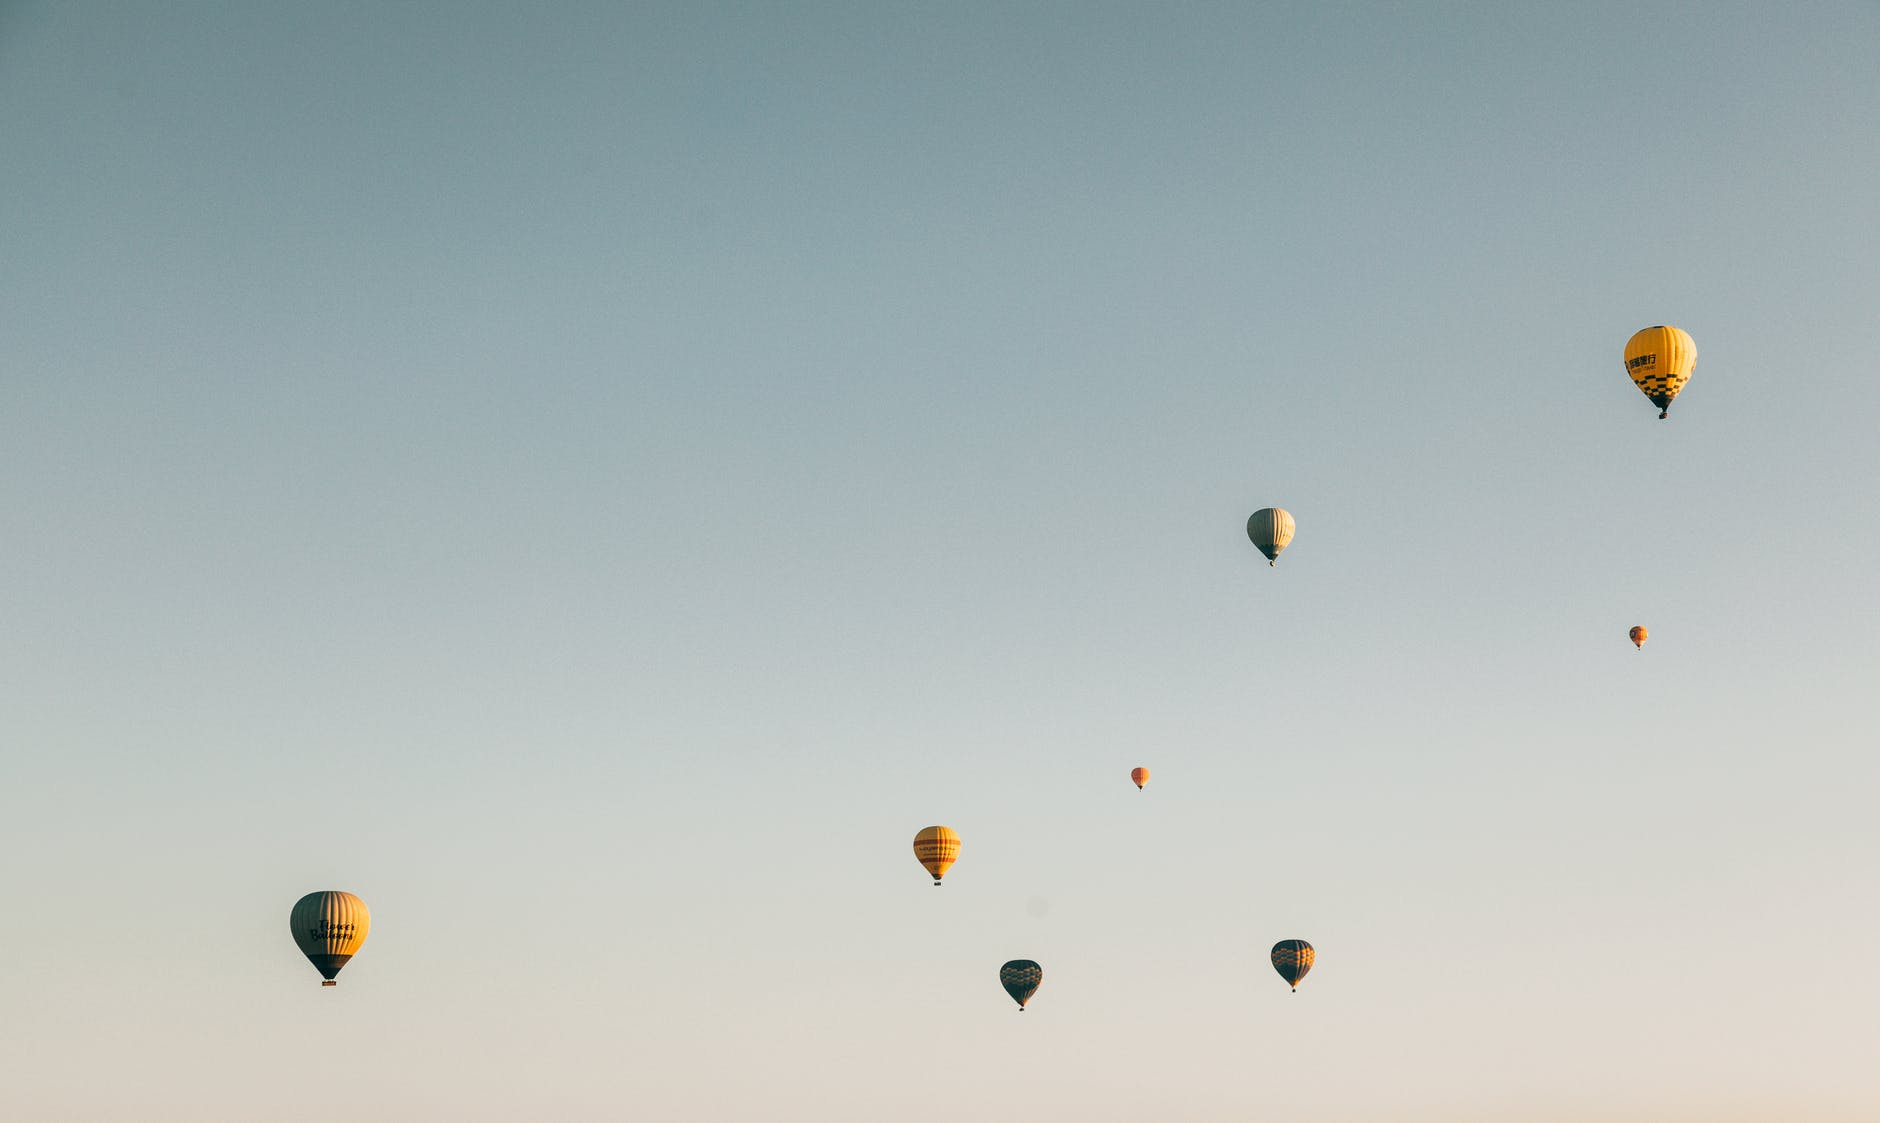 colorful air balloons flying in cloudless sky